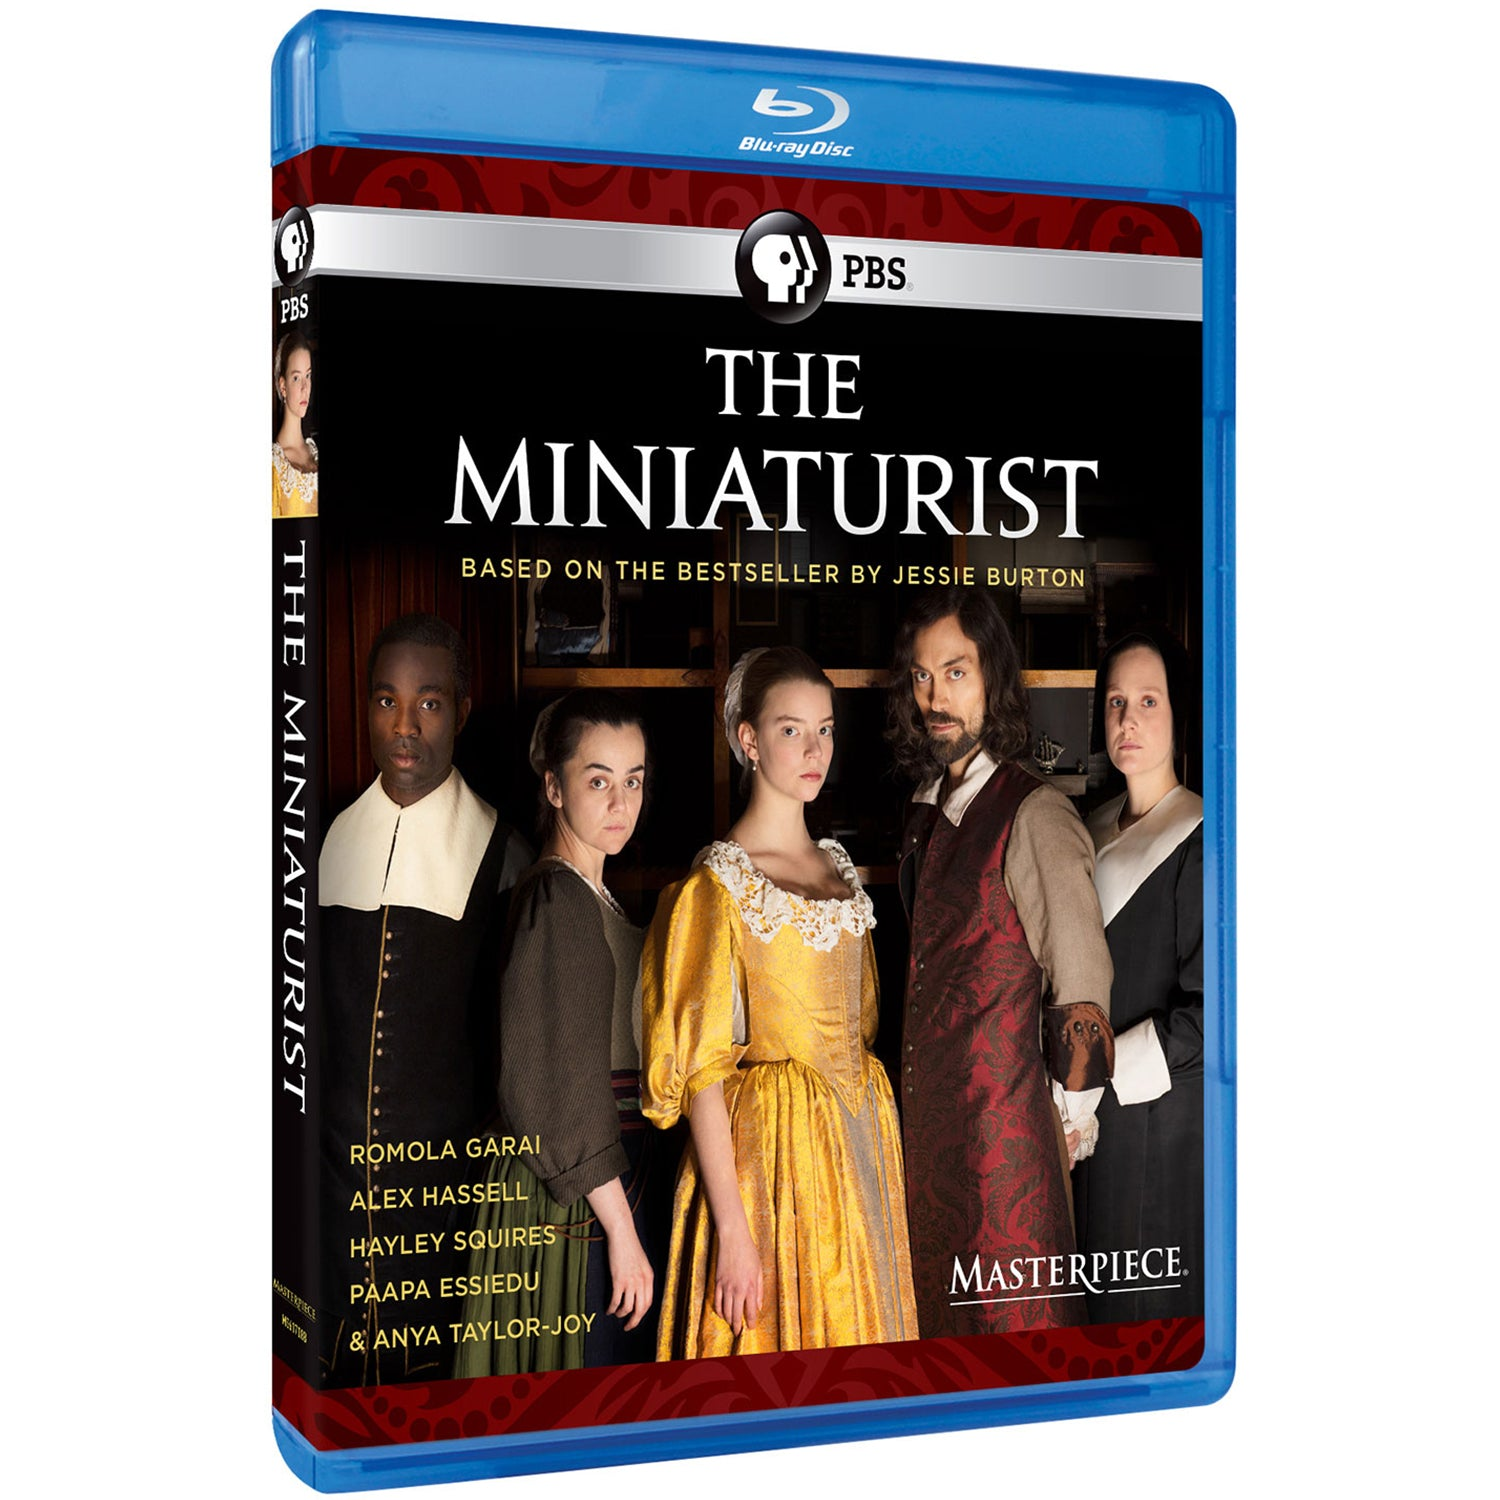 The Miniaturist (Blu-ray)